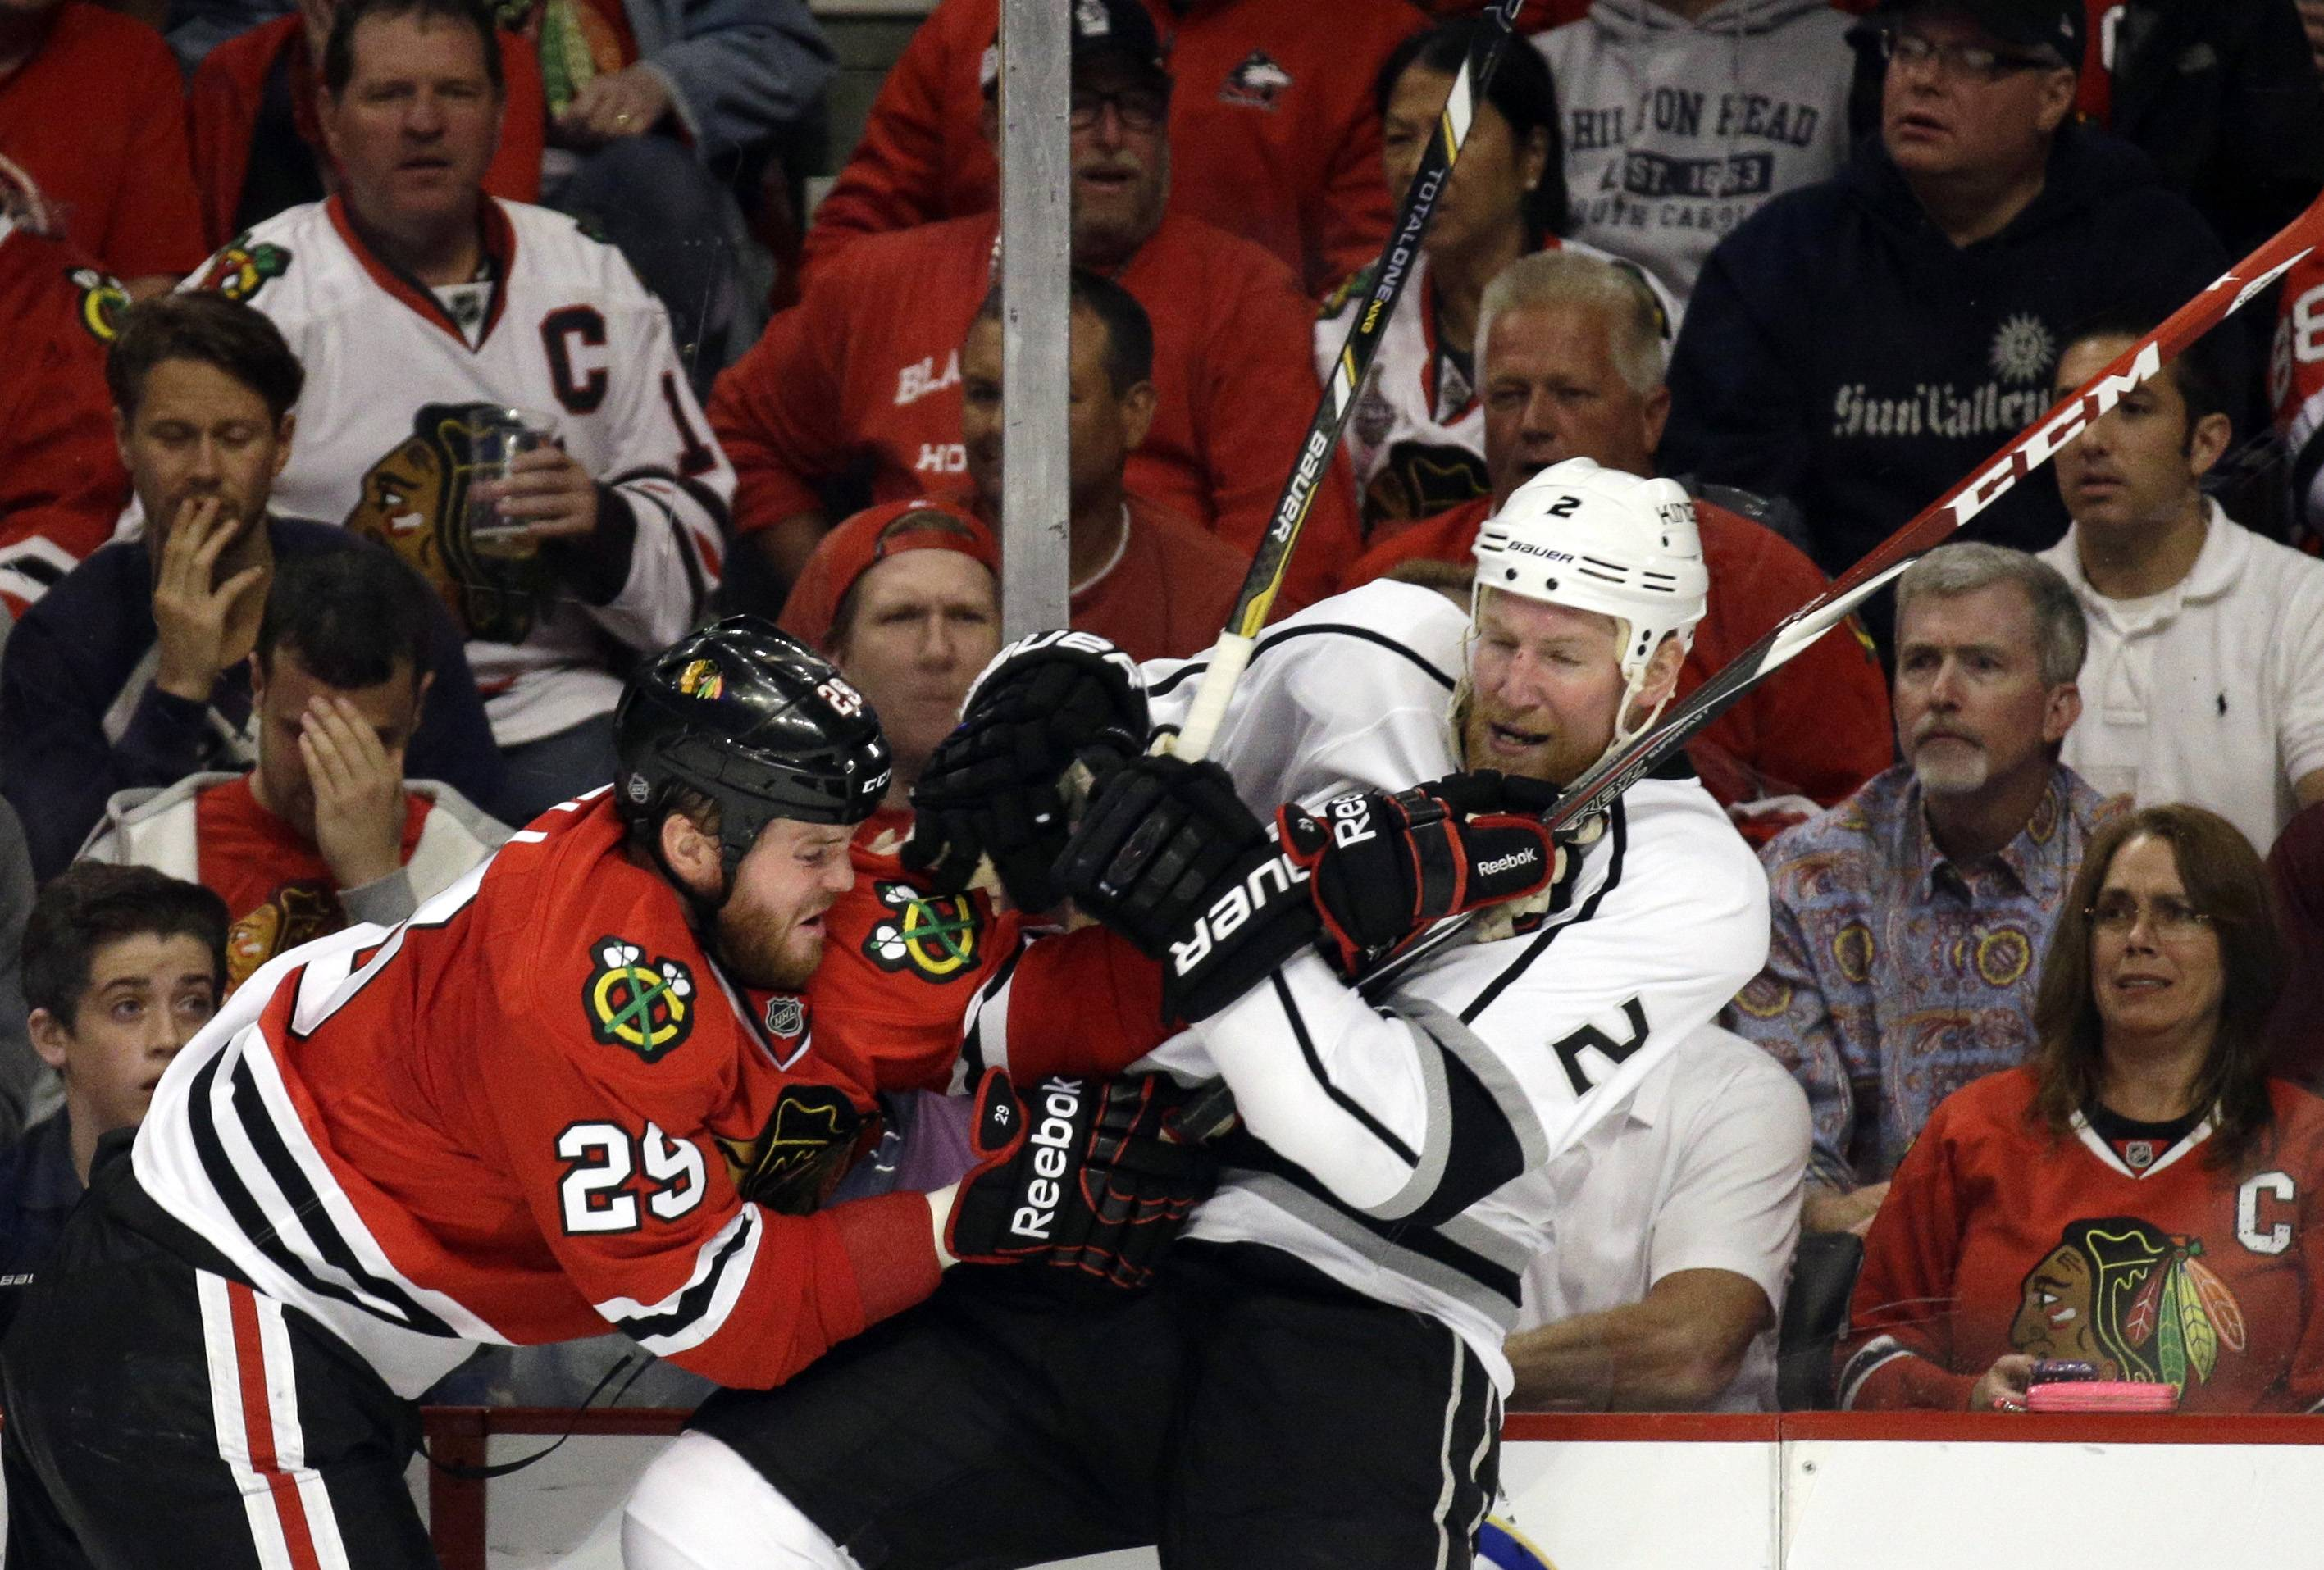 Chicago Blackhawks left wing Bryan Bickell (29) checks Los Angeles Kings defenseman Matt Greene (2) during the second period.